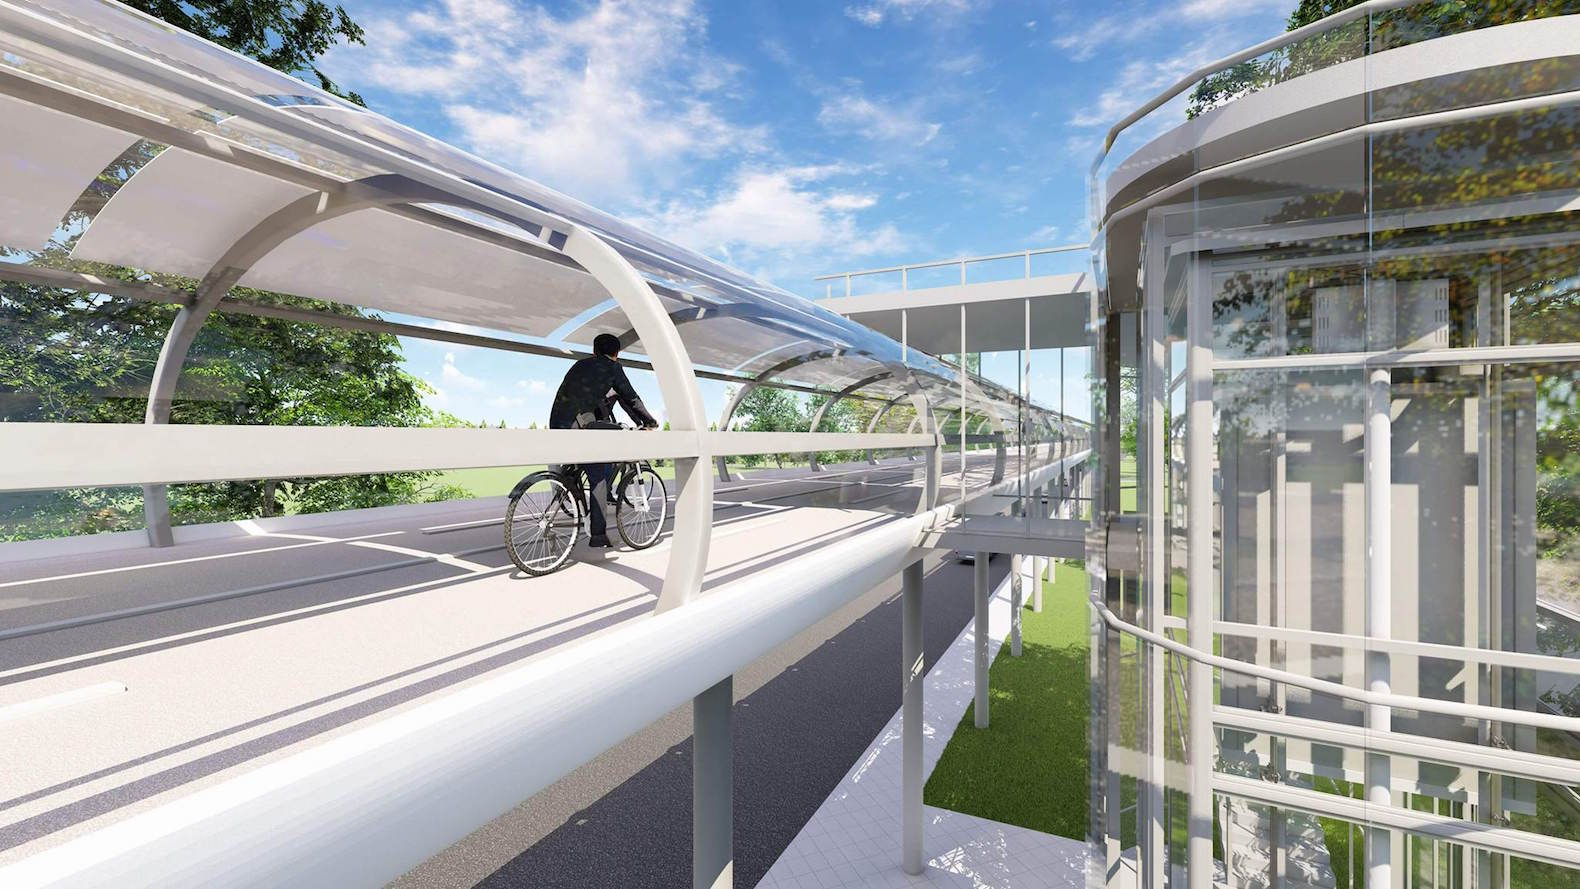 This all-weather bicycle highway could fulfill the dreams of bike commuters everywhere